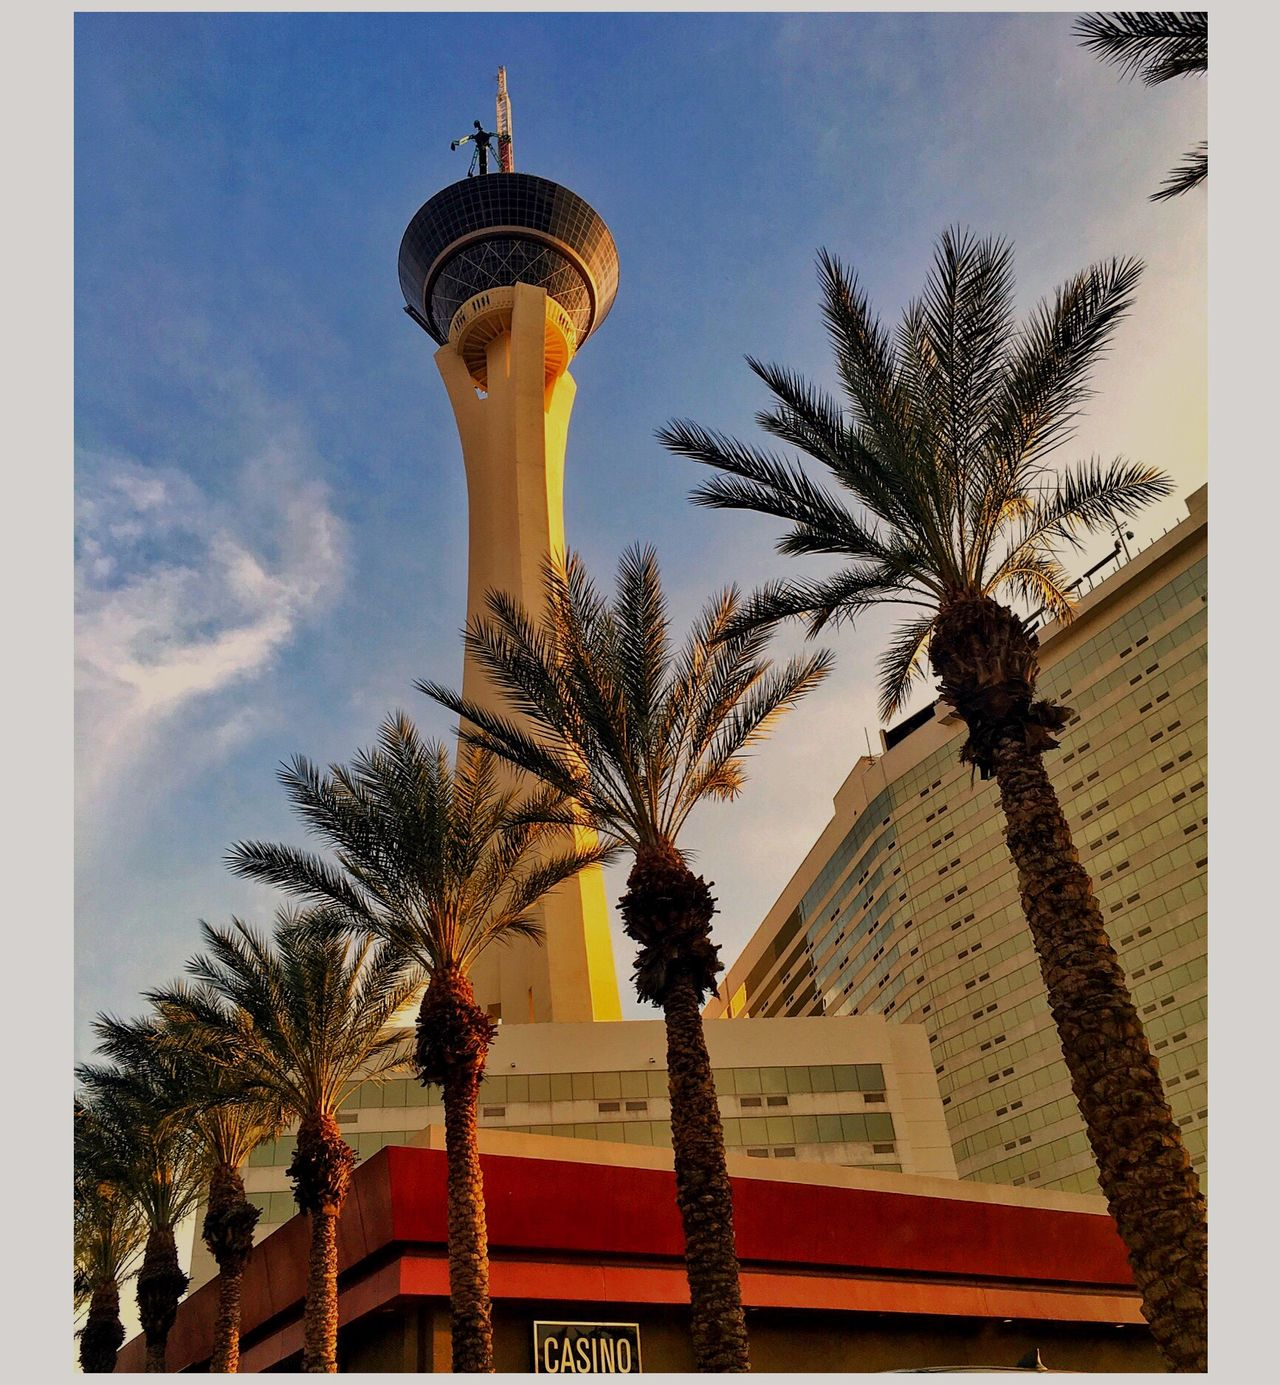 Heads and Shoulders Above ... The Stratosphere Casino and Resort. Las Vegas, NV. Picturing Las Vegas Palm Tree Tree Low Angle View Built Structure Architecture Building Exterior Sky Day Palm Frond No People Outdoors Growth Clear Sky Googie The Architect - 2017 EyeEm Awards IPhoneography Eyeemphoto This Week On Eyeem Malephotographerofthemonth The Street Photographer - 2017 EyeEm Awards